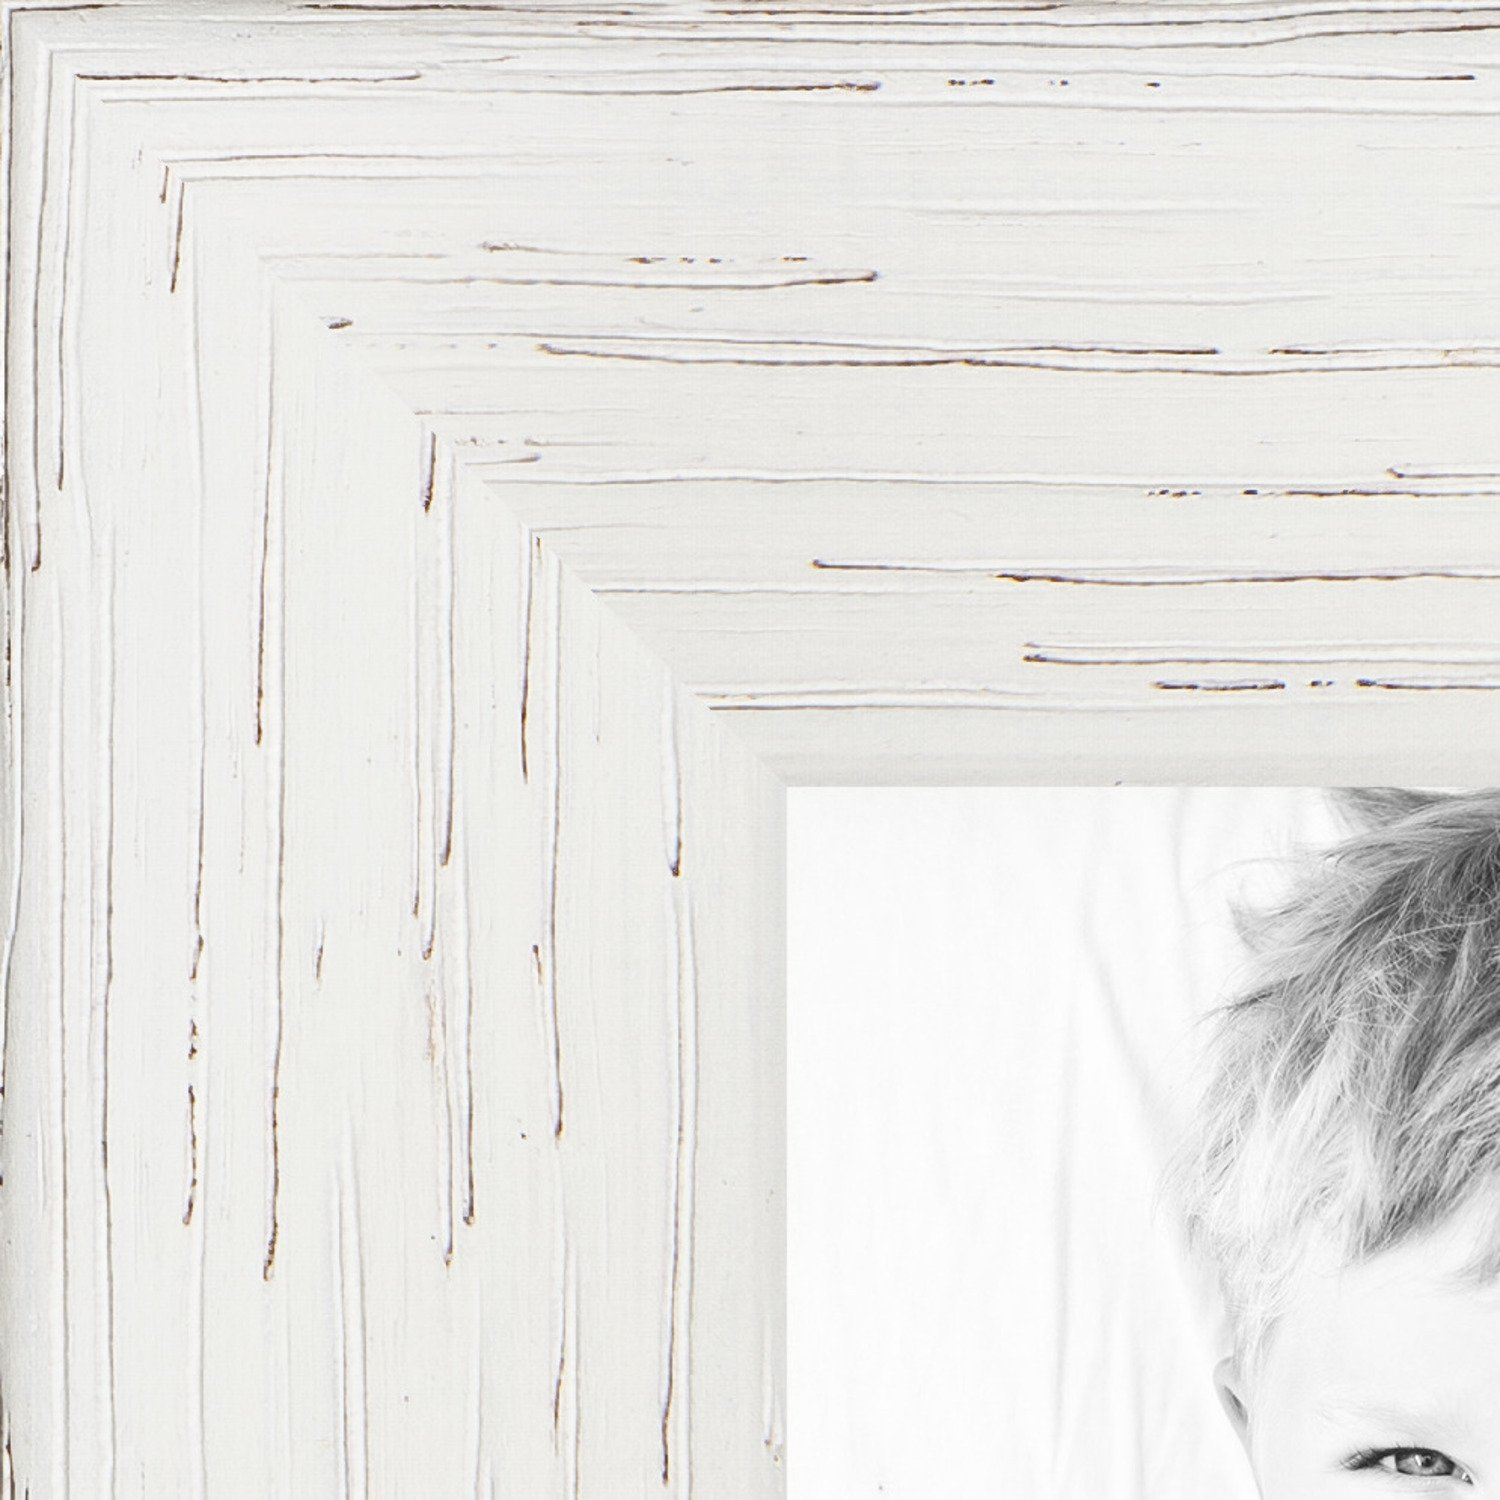 ArtToFrames 5x23 inch White Stain on Red Oak Wood Picture Frame, 2WOM0066-81784-YWHT-5x23